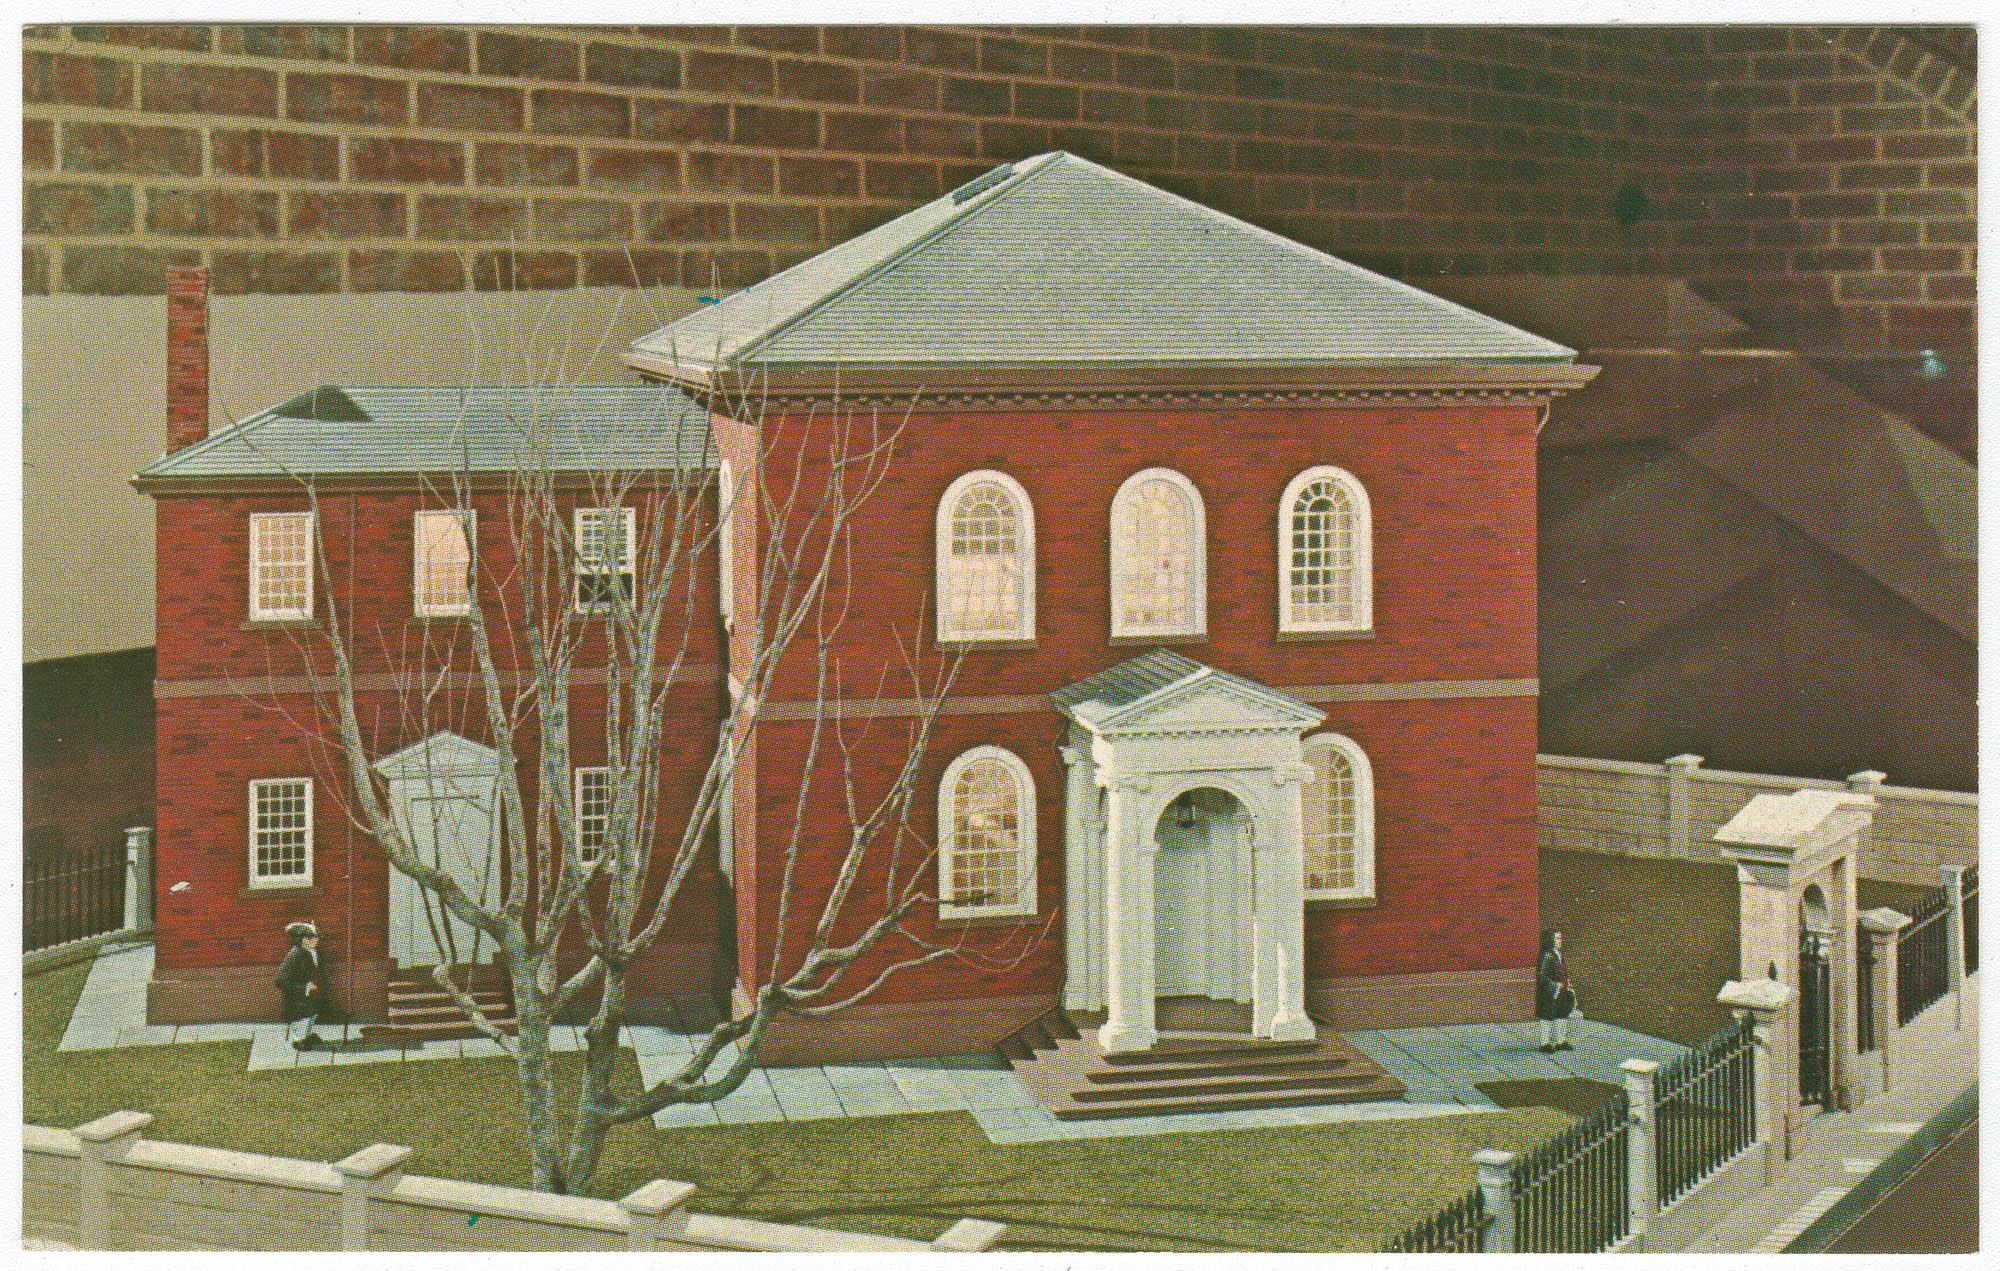 Newport, R.I. Touro Synagogue, 1763